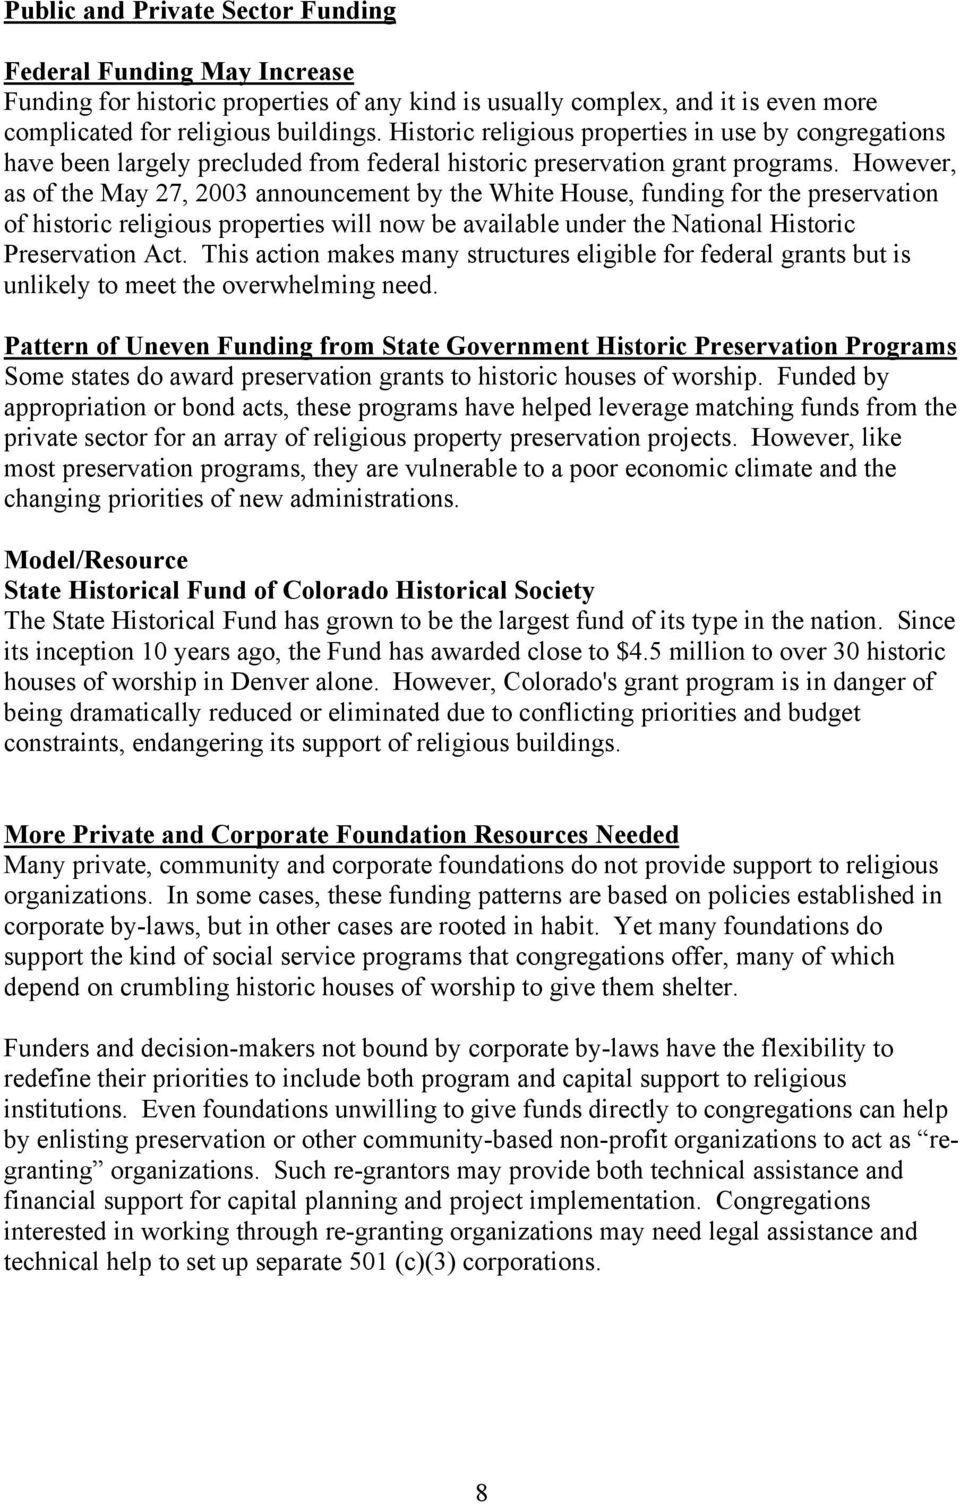 However, as of the May 27, 2003 announcement by the White House, funding for the preservation of historic religious properties will now be available under the National Historic Preservation Act.